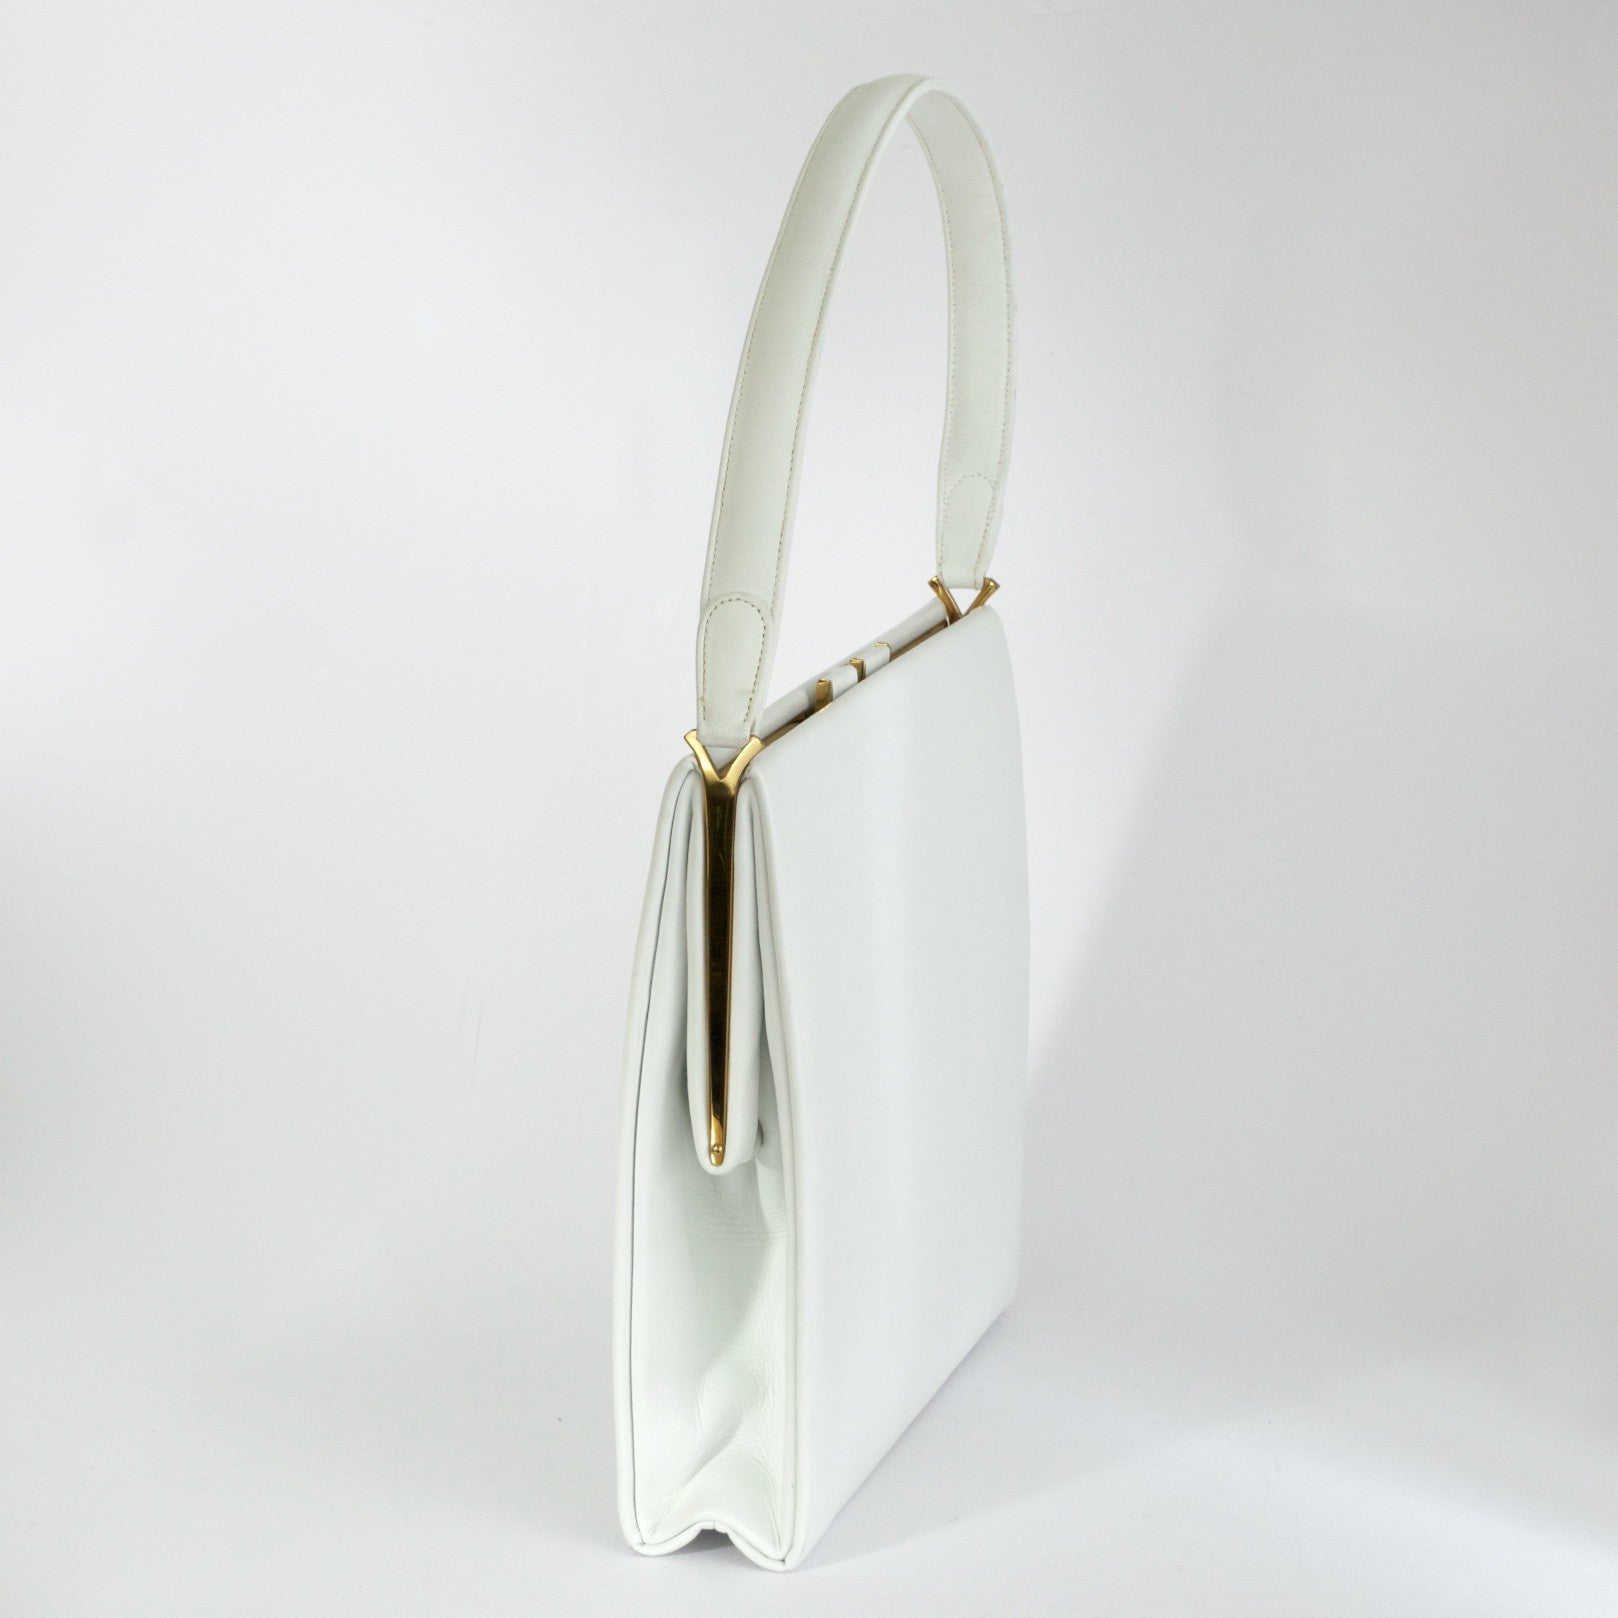 Vintage white leather handbag by Waldybag